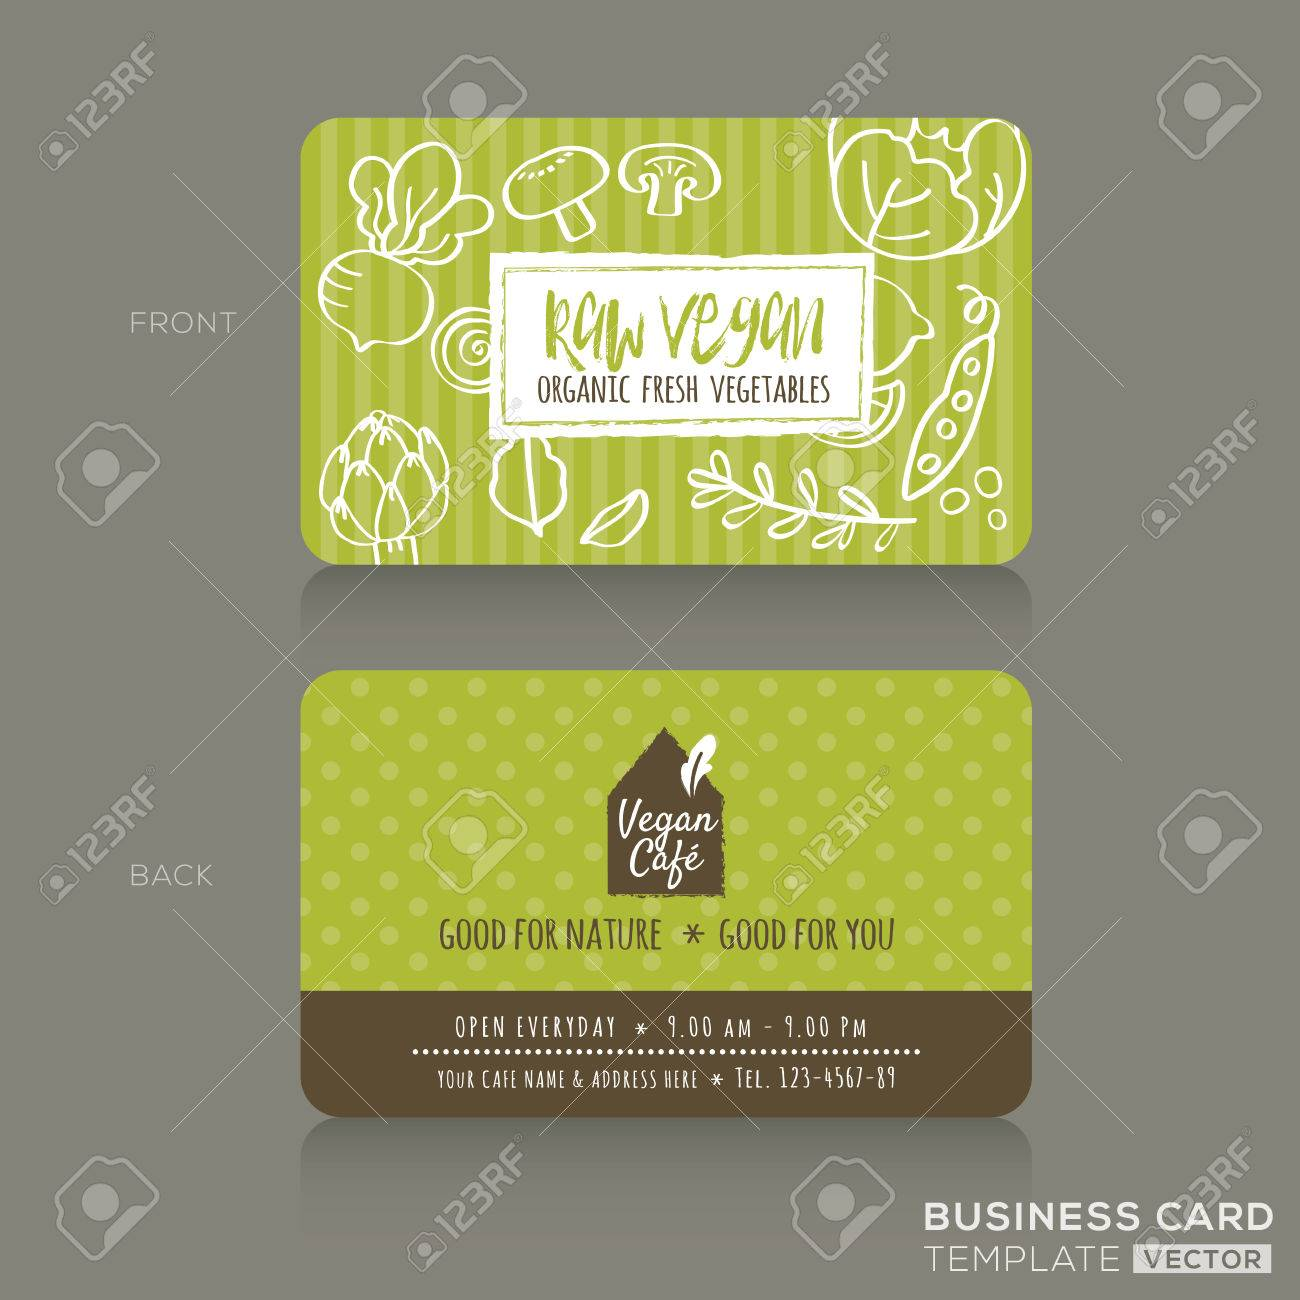 Organic foods shop or vegan cafe business card design template with imagens organic foods shop or vegan cafe business card design template with vegetables and fruits doodle background reheart